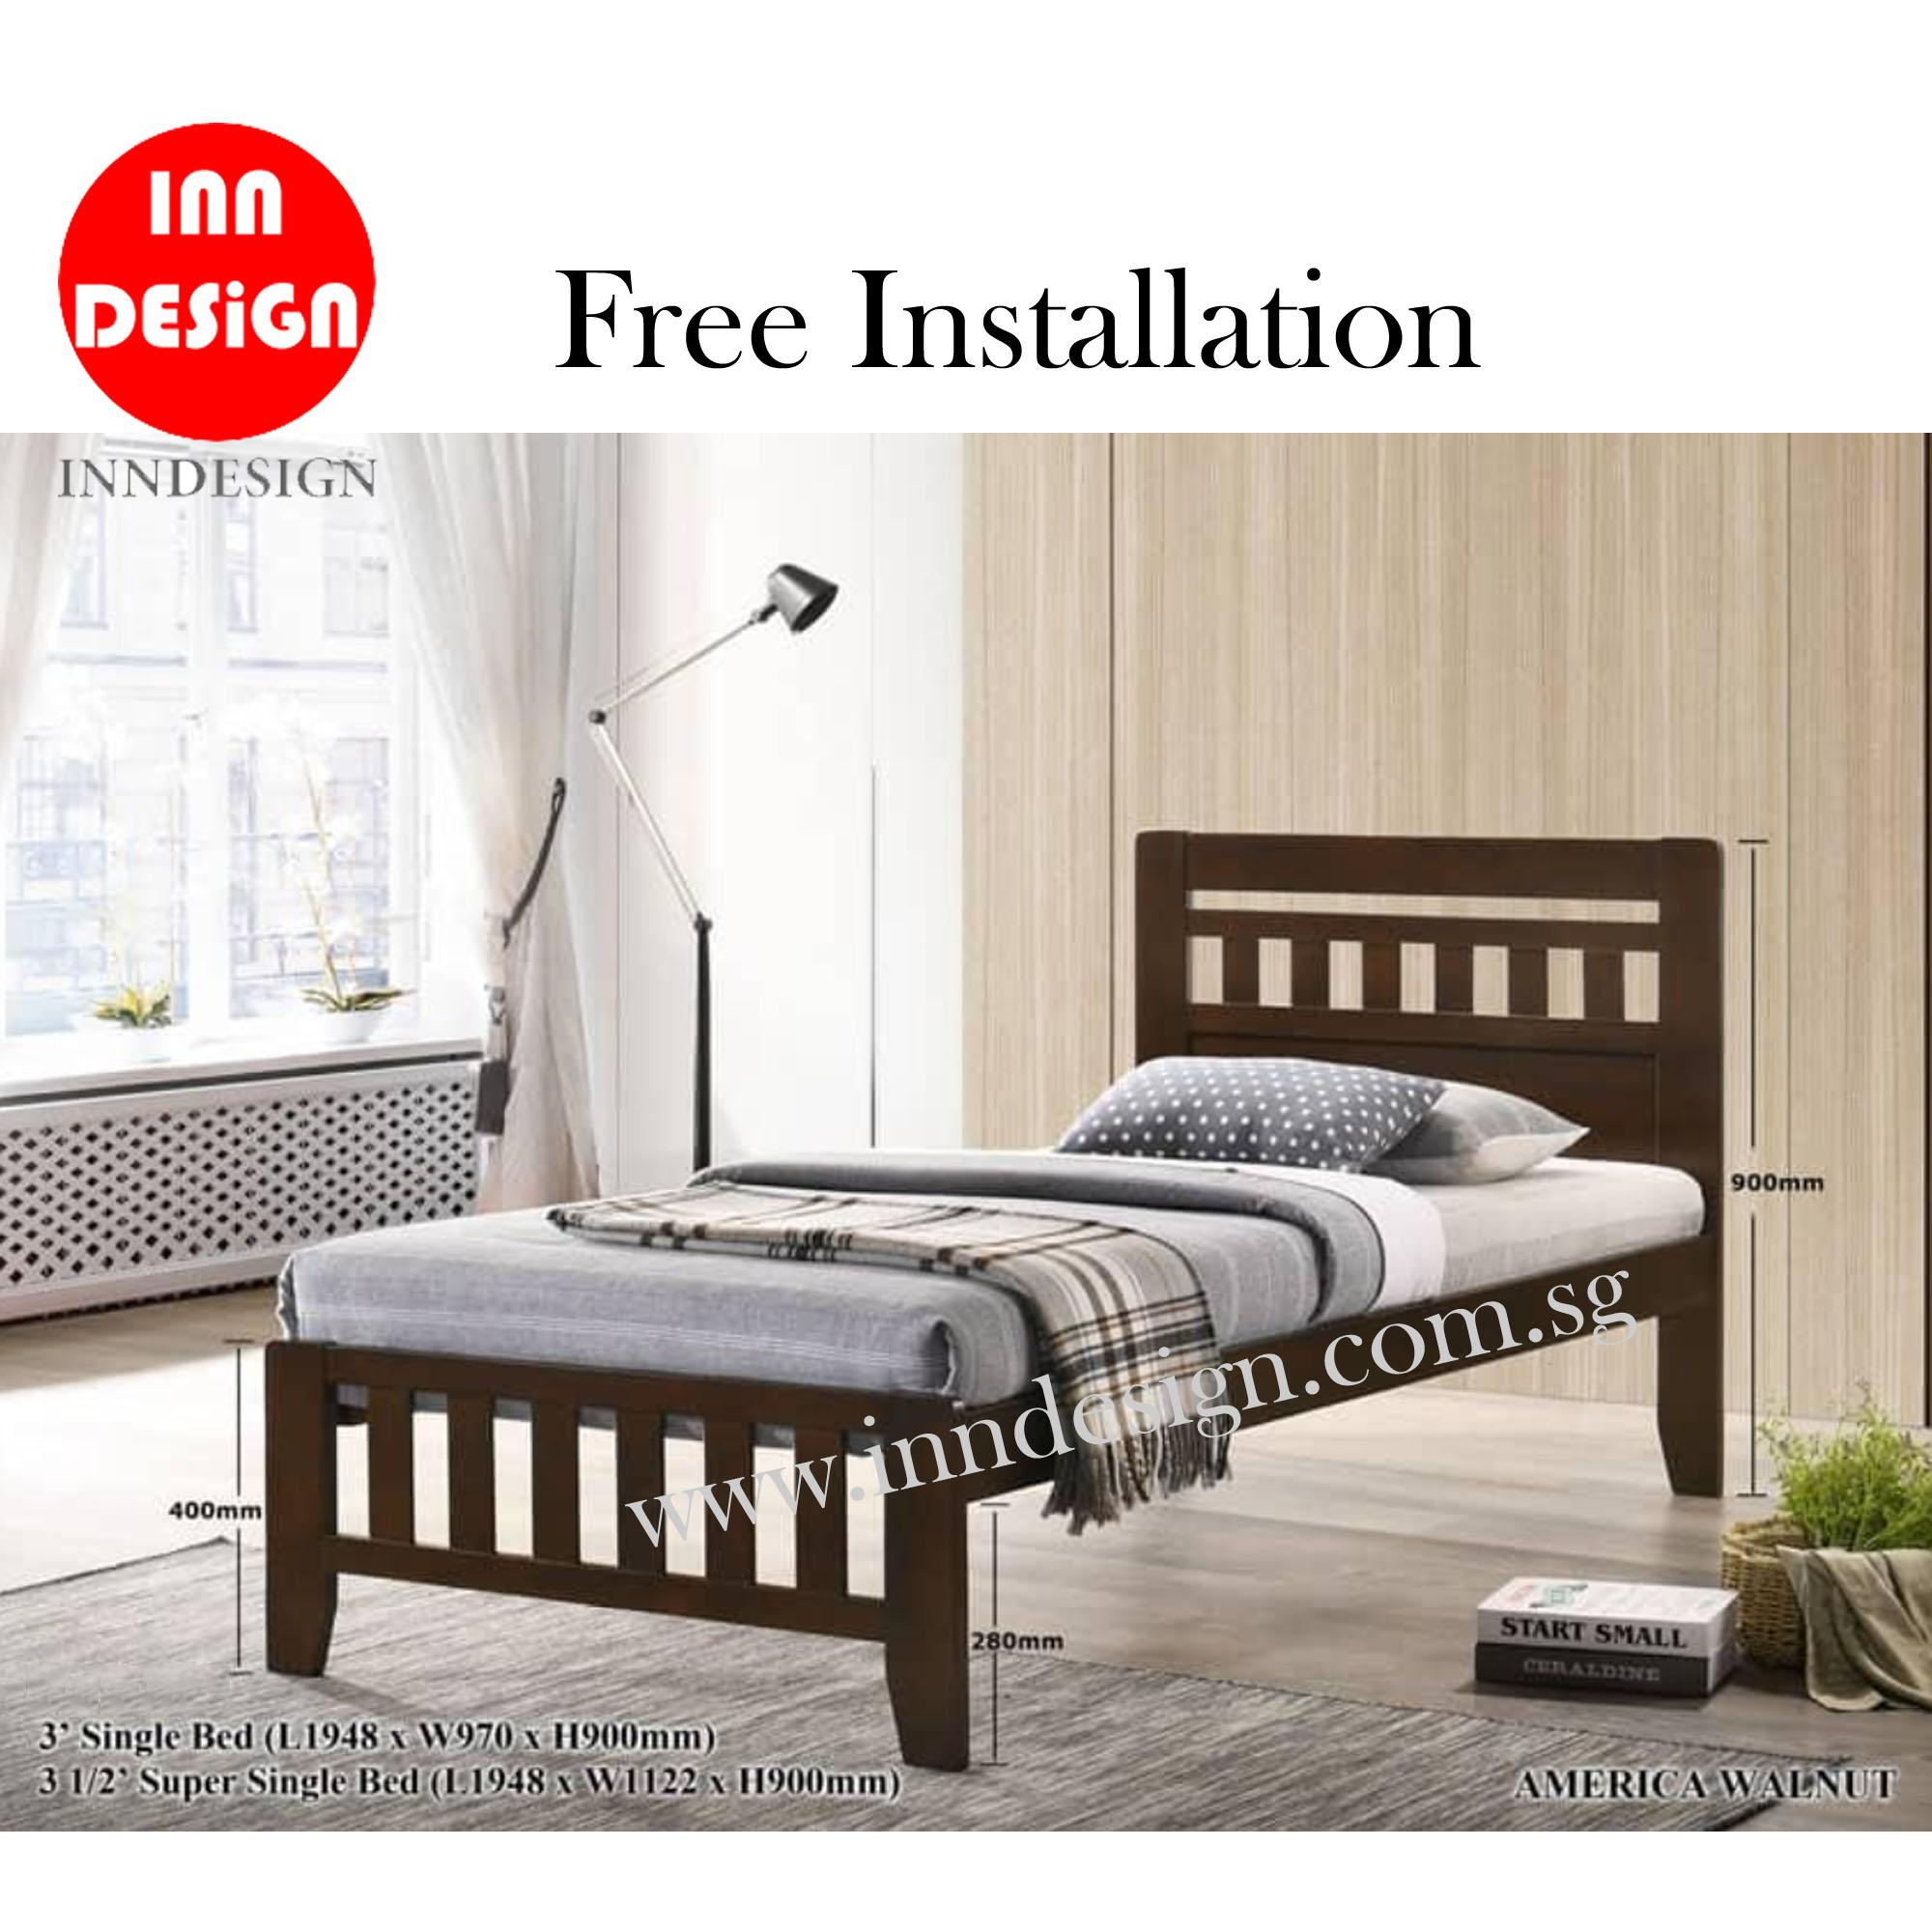 Haangee Single/Super Single Plywood Bedframe